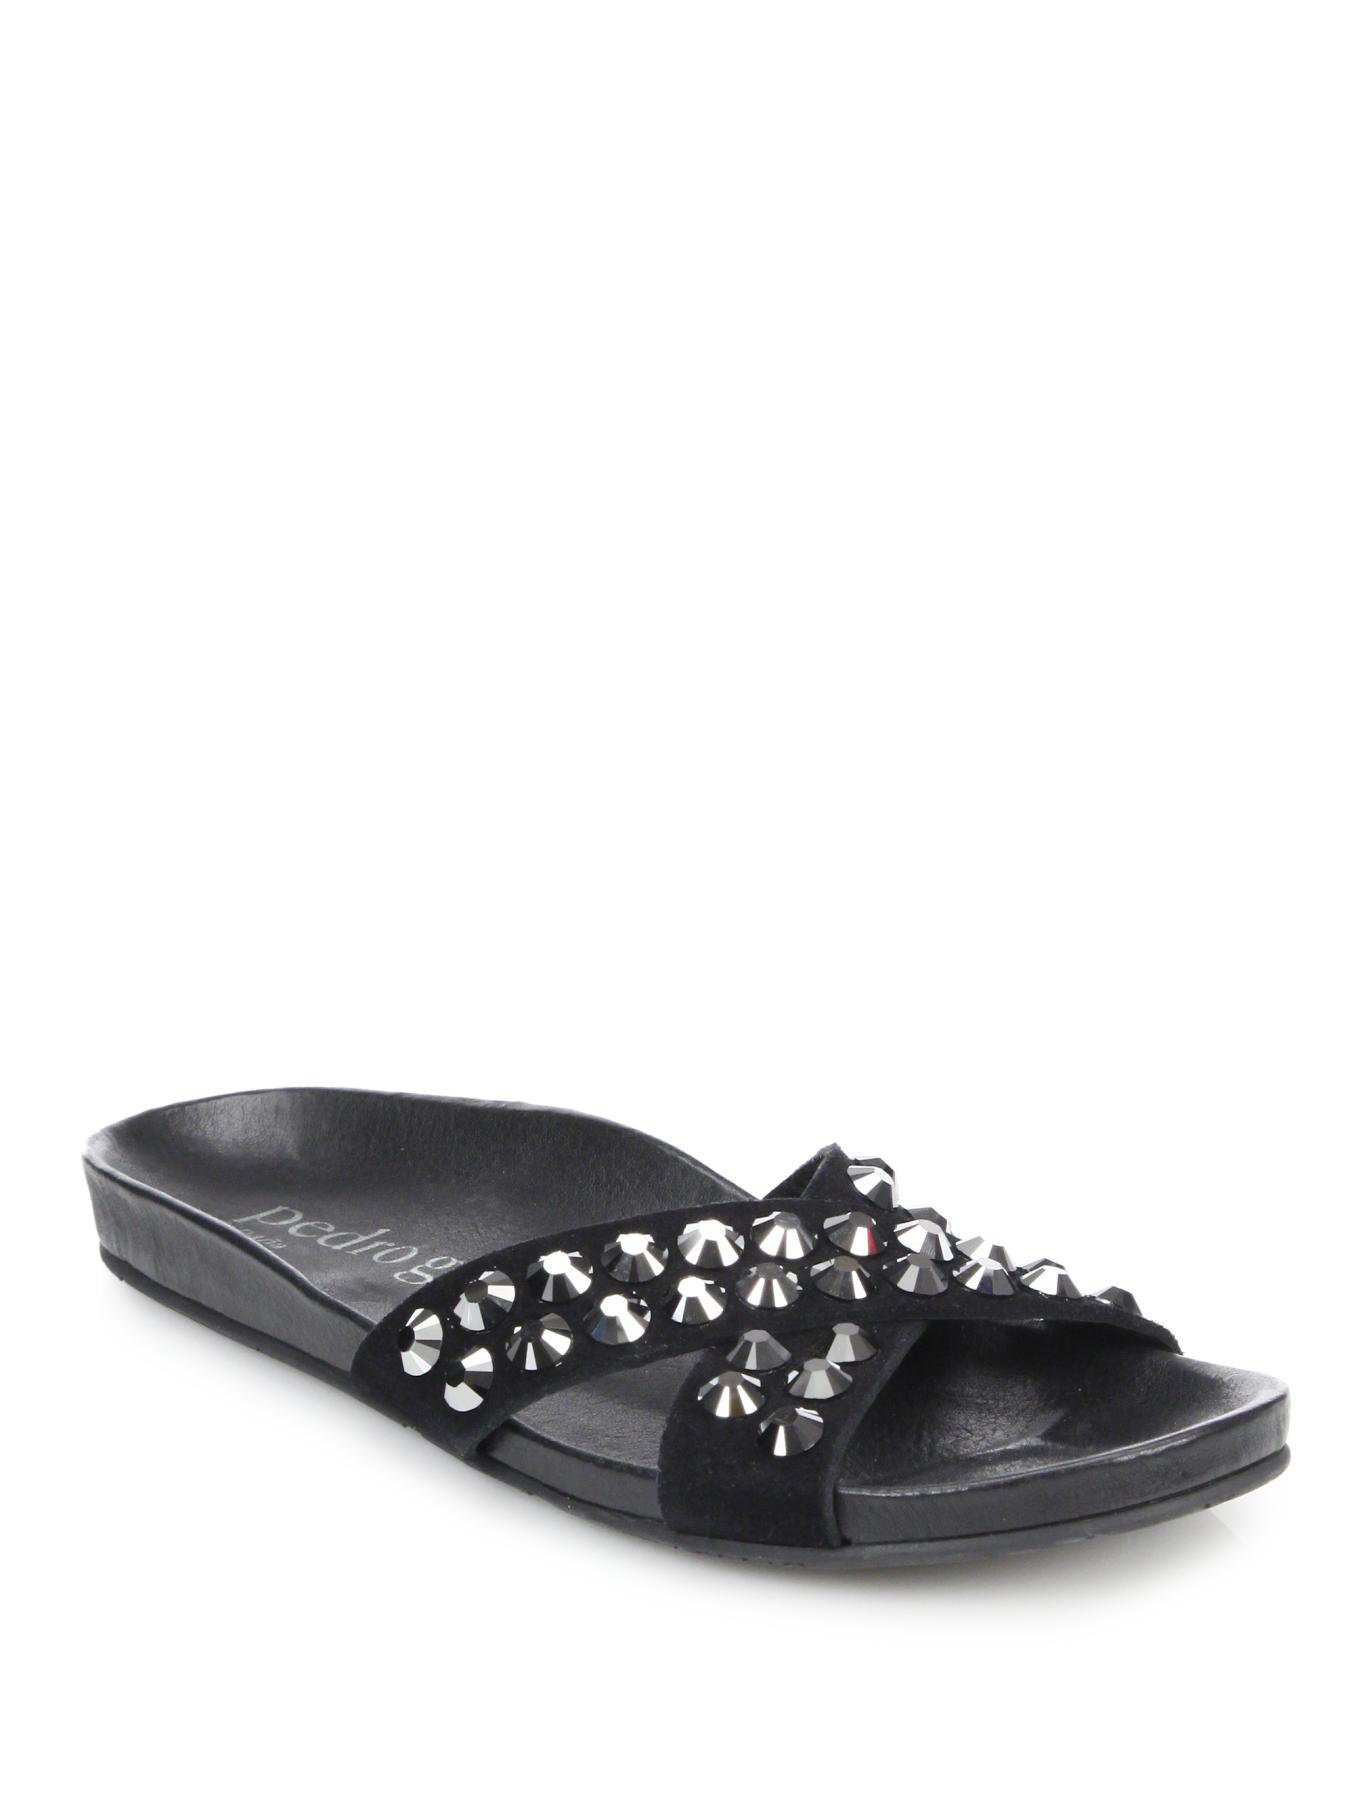 Lyst Pedro Garcia Analis Studded Suede Slide Sandals In